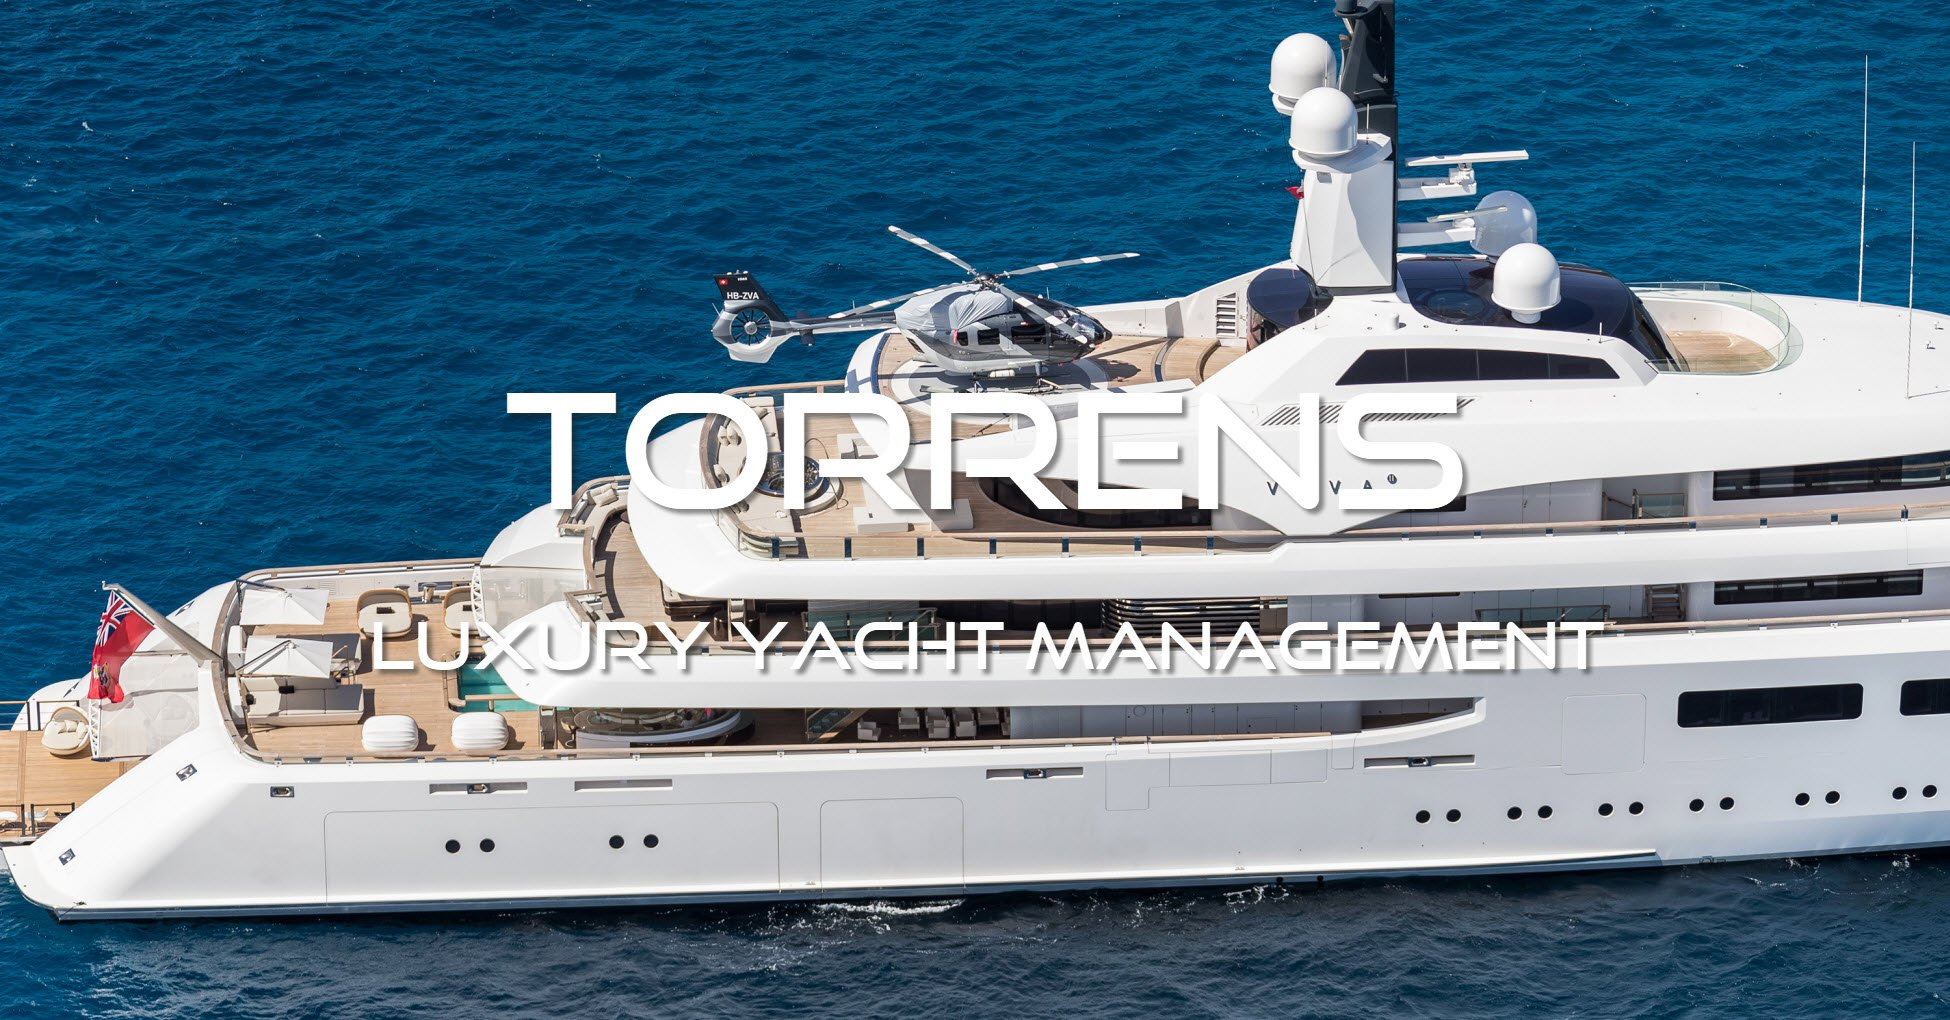 Torrens Luxury Collection Yacht Management